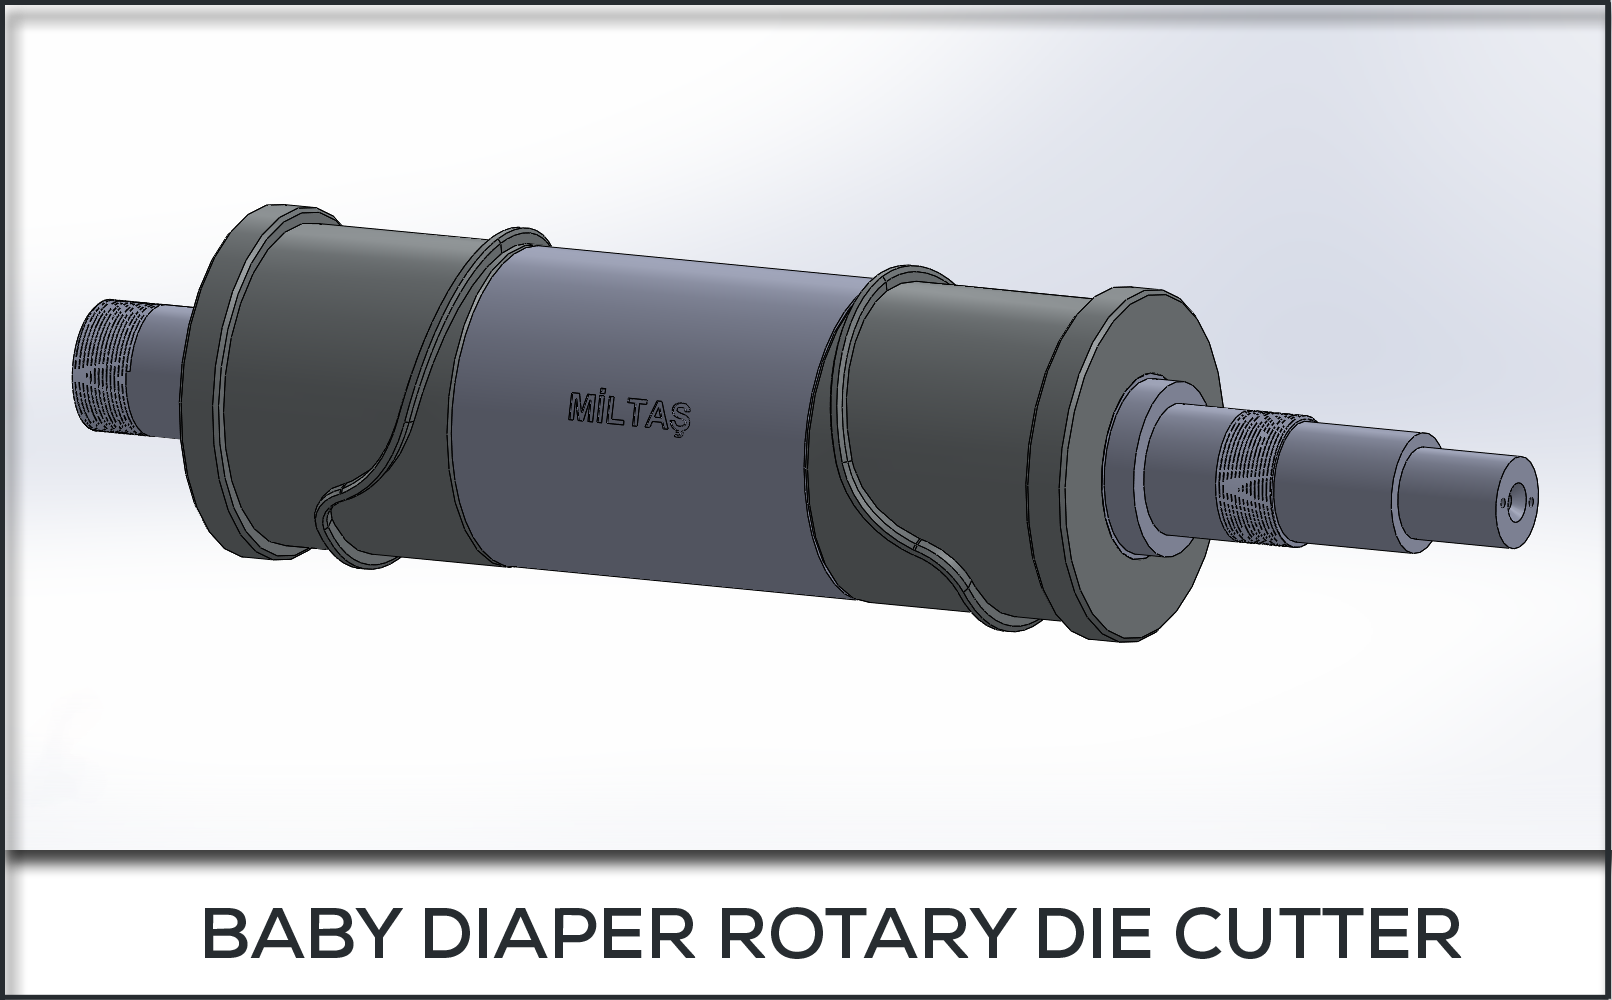 Baby Diaper Rotary Die Cutter